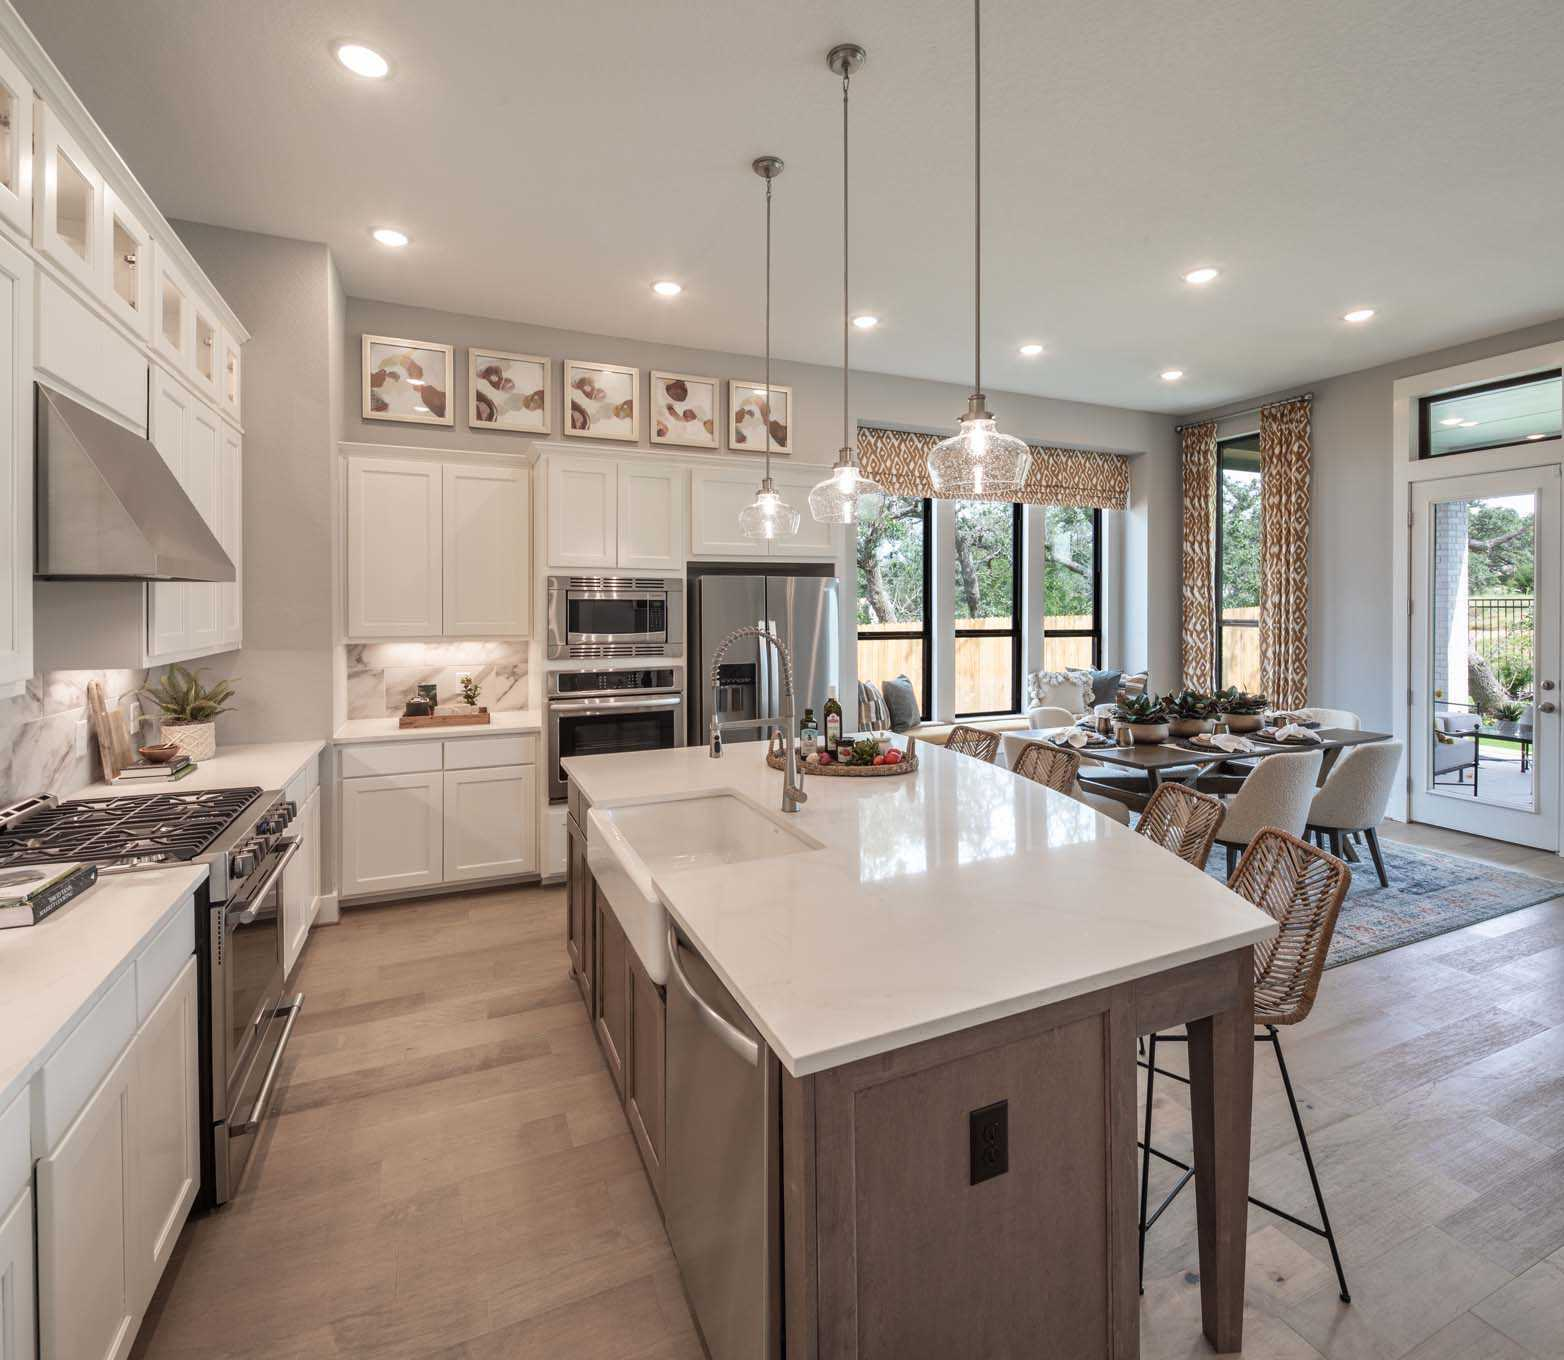 Kitchen featured in the Plan Davenport By Highland Homes in Sherman-Denison, TX